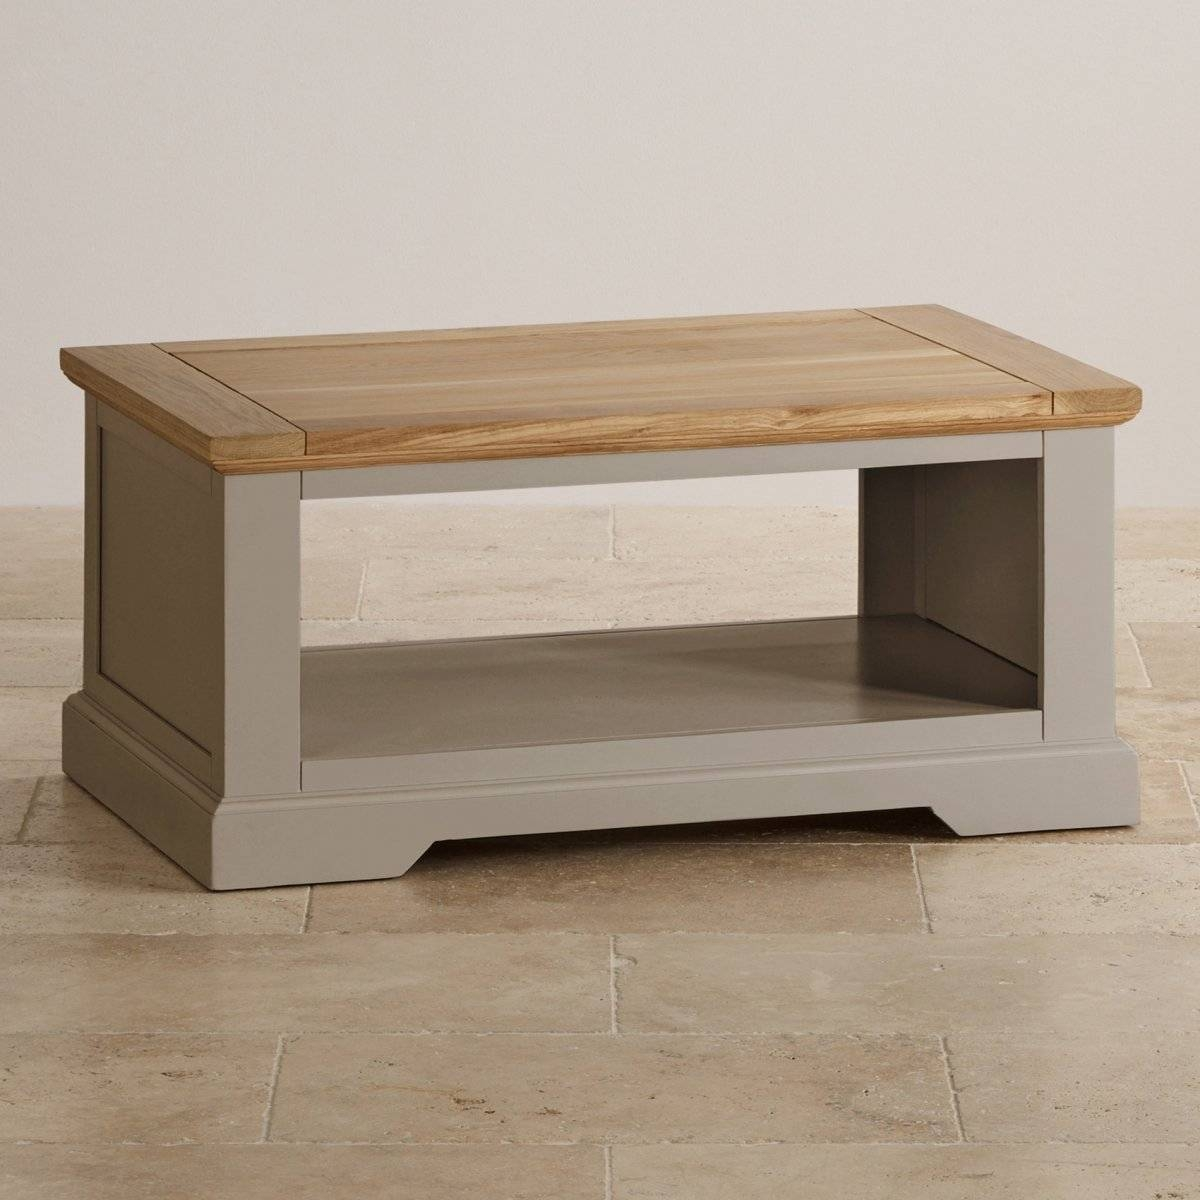 Coffee Tables | Free Delivery Available | Oak Furniture Land inside Oak and Cream Coffee Tables (Image 10 of 30)